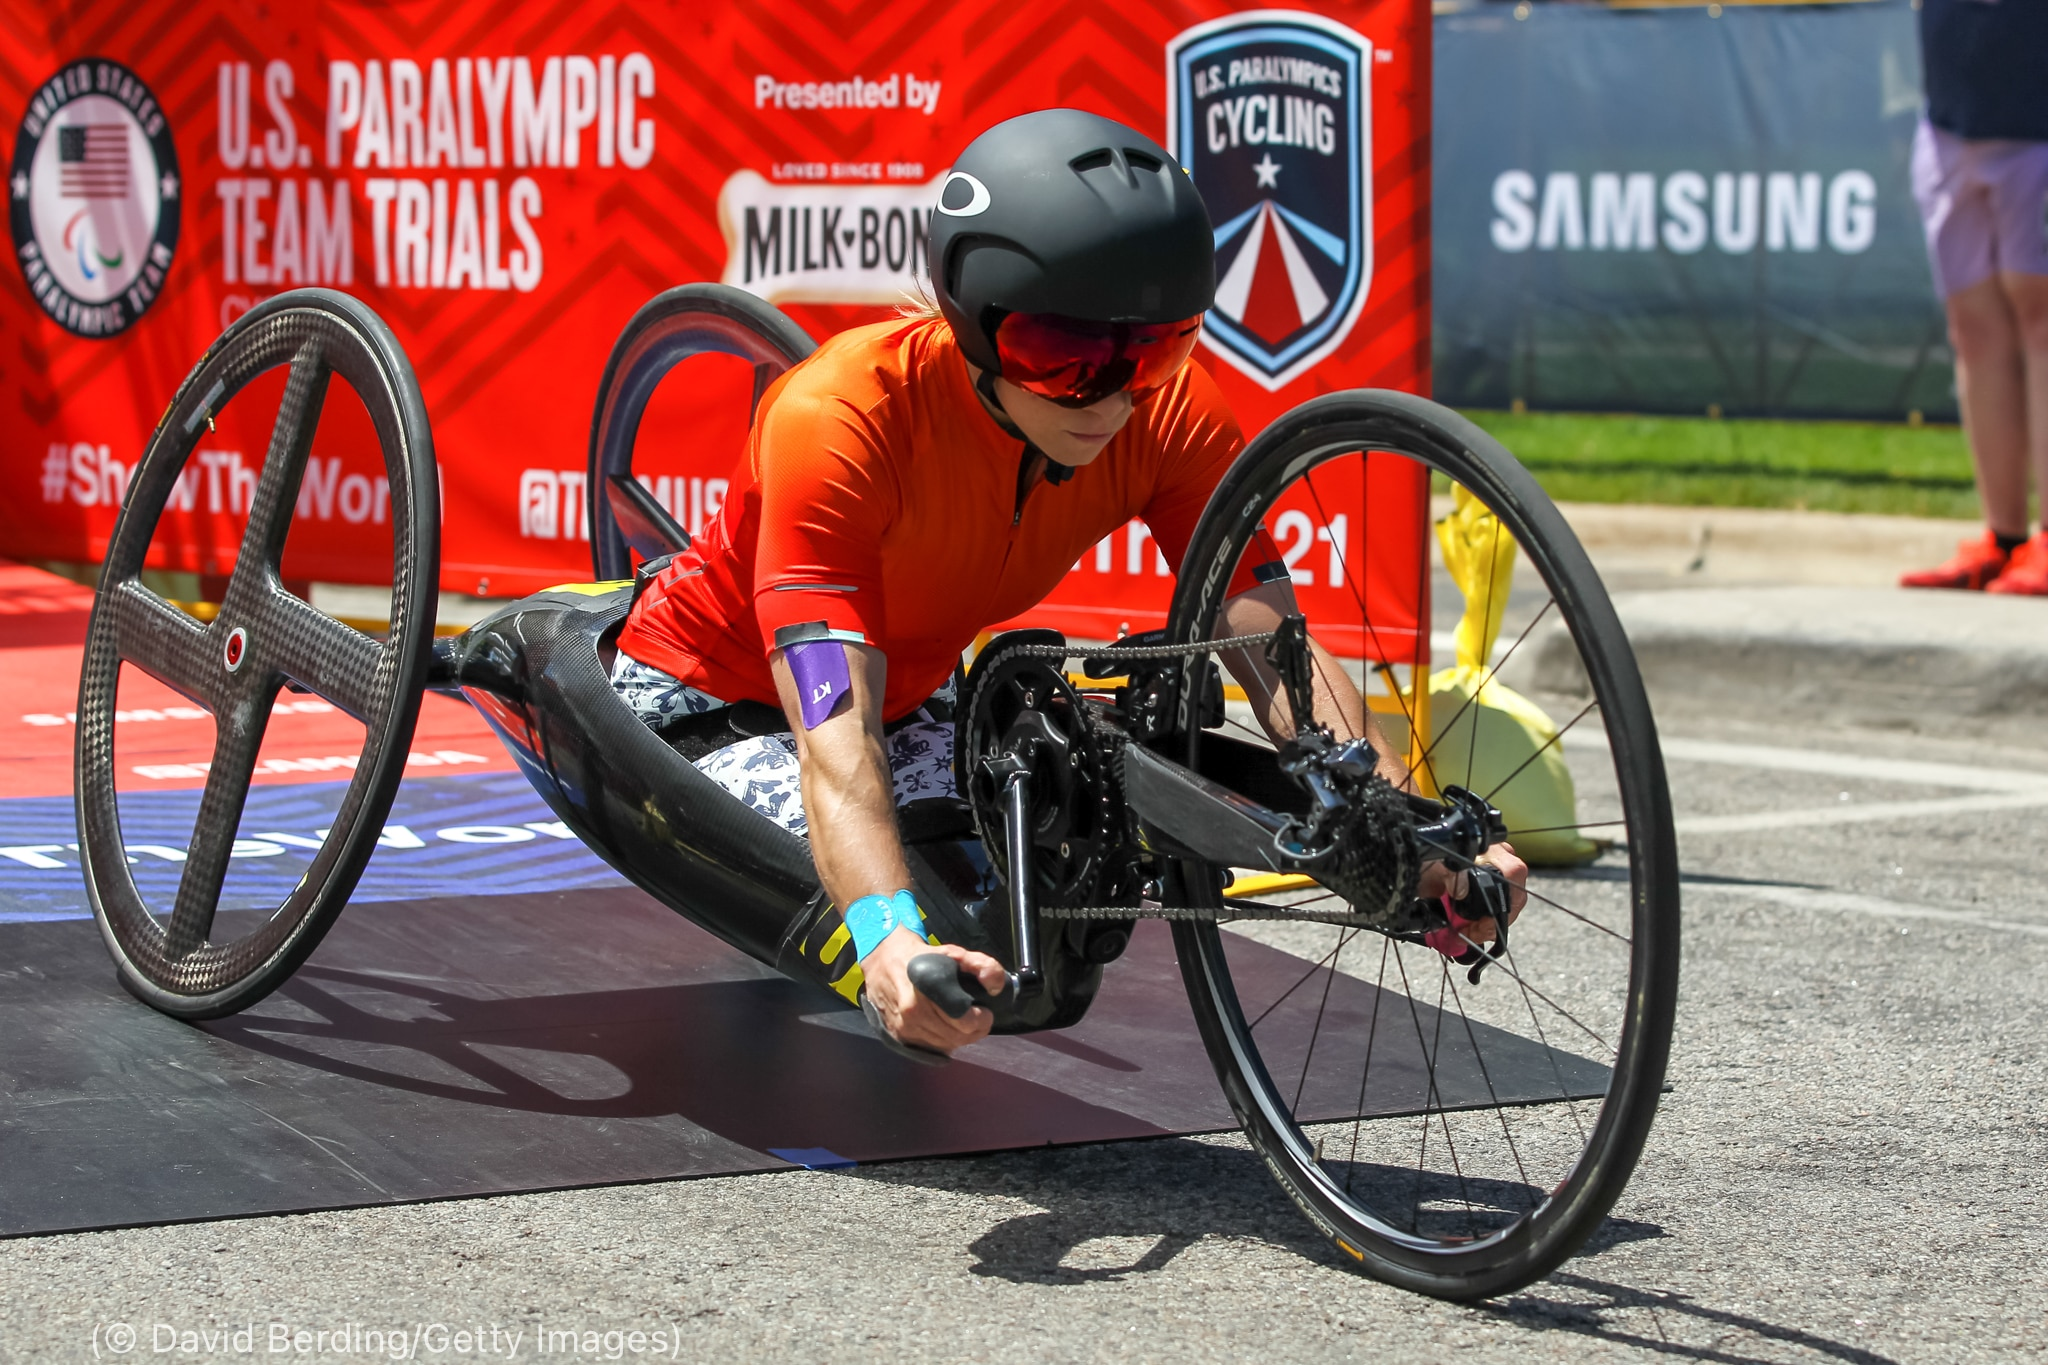 Woman competing in cycling event (© David Berding/Getty Images)